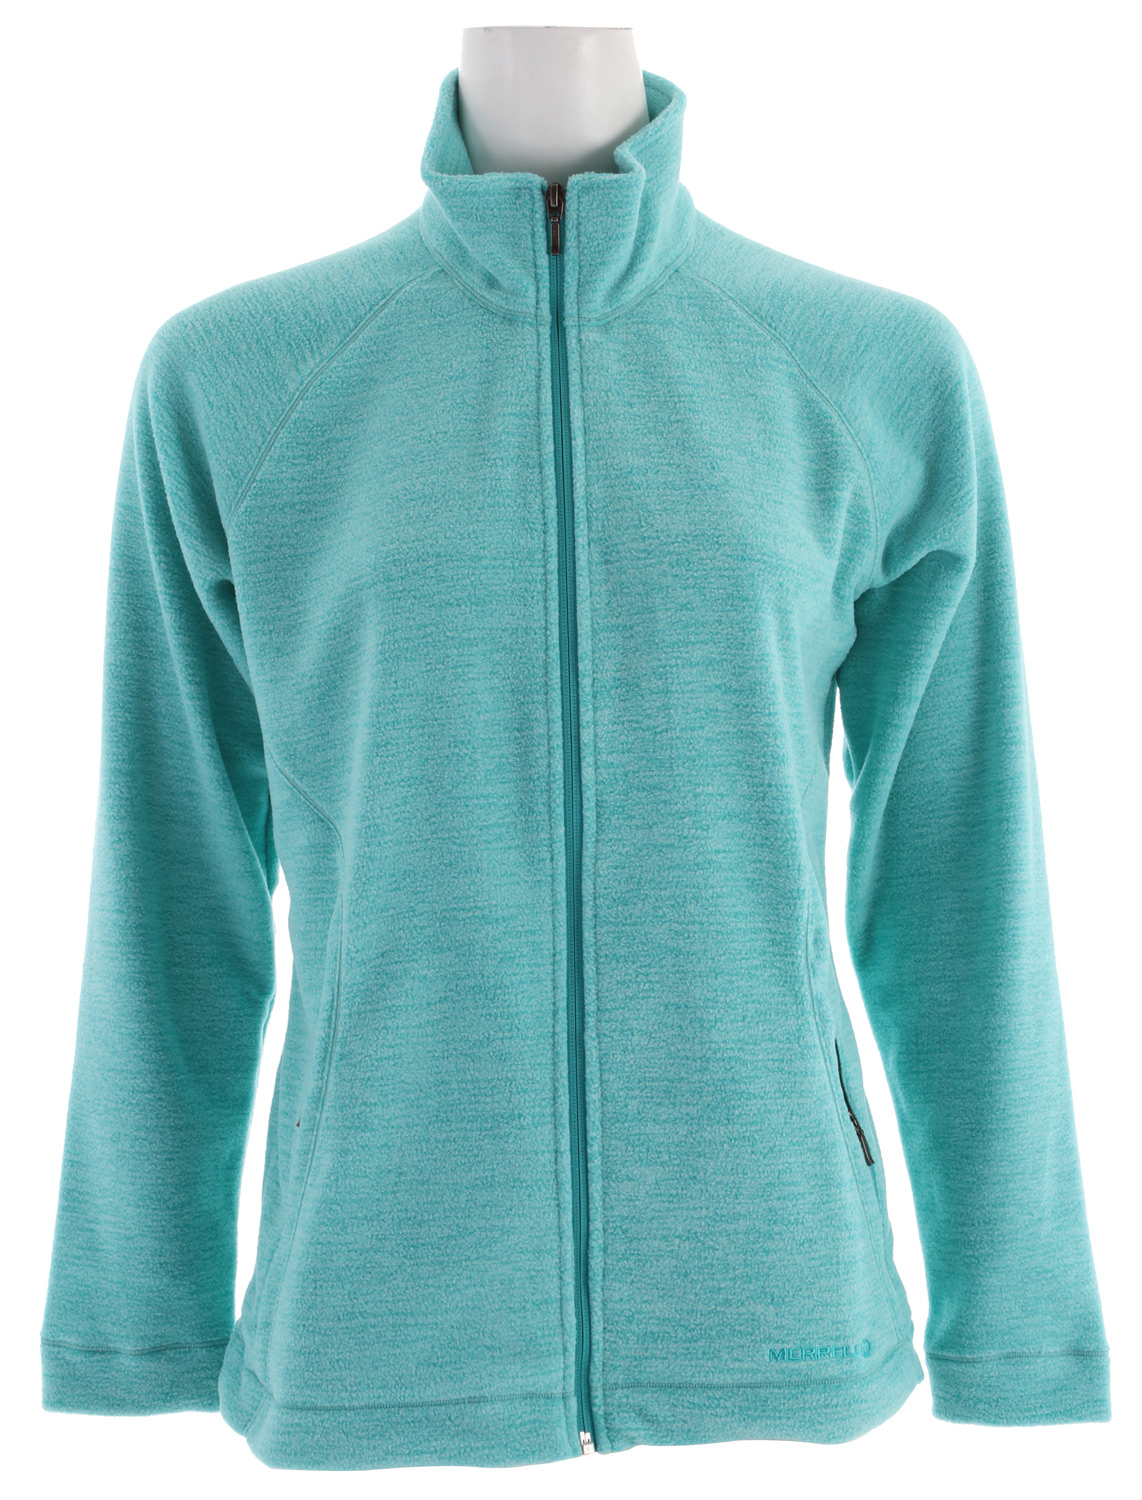 "Hide from the cold in the soft warmth of our Zaida Full Zip fleece full-zip, simply beautiful enough to inspire you to get outside every day. Made with a high collar to give you extra neck and face coverage, and dual zip-secure hand pockets.Key Features of the Merrell Zaida Full Zip Fleece: FABRIC: 60% cotton / 40% polyester Merrell Conductor lightweight thermal fleece provides versatile heat retention in varying conditions Princess seaming flatters and contours Higher collar lets you hide your face from the cold Dual zip-secure hand pockets 26"" Center back length - $68.95"